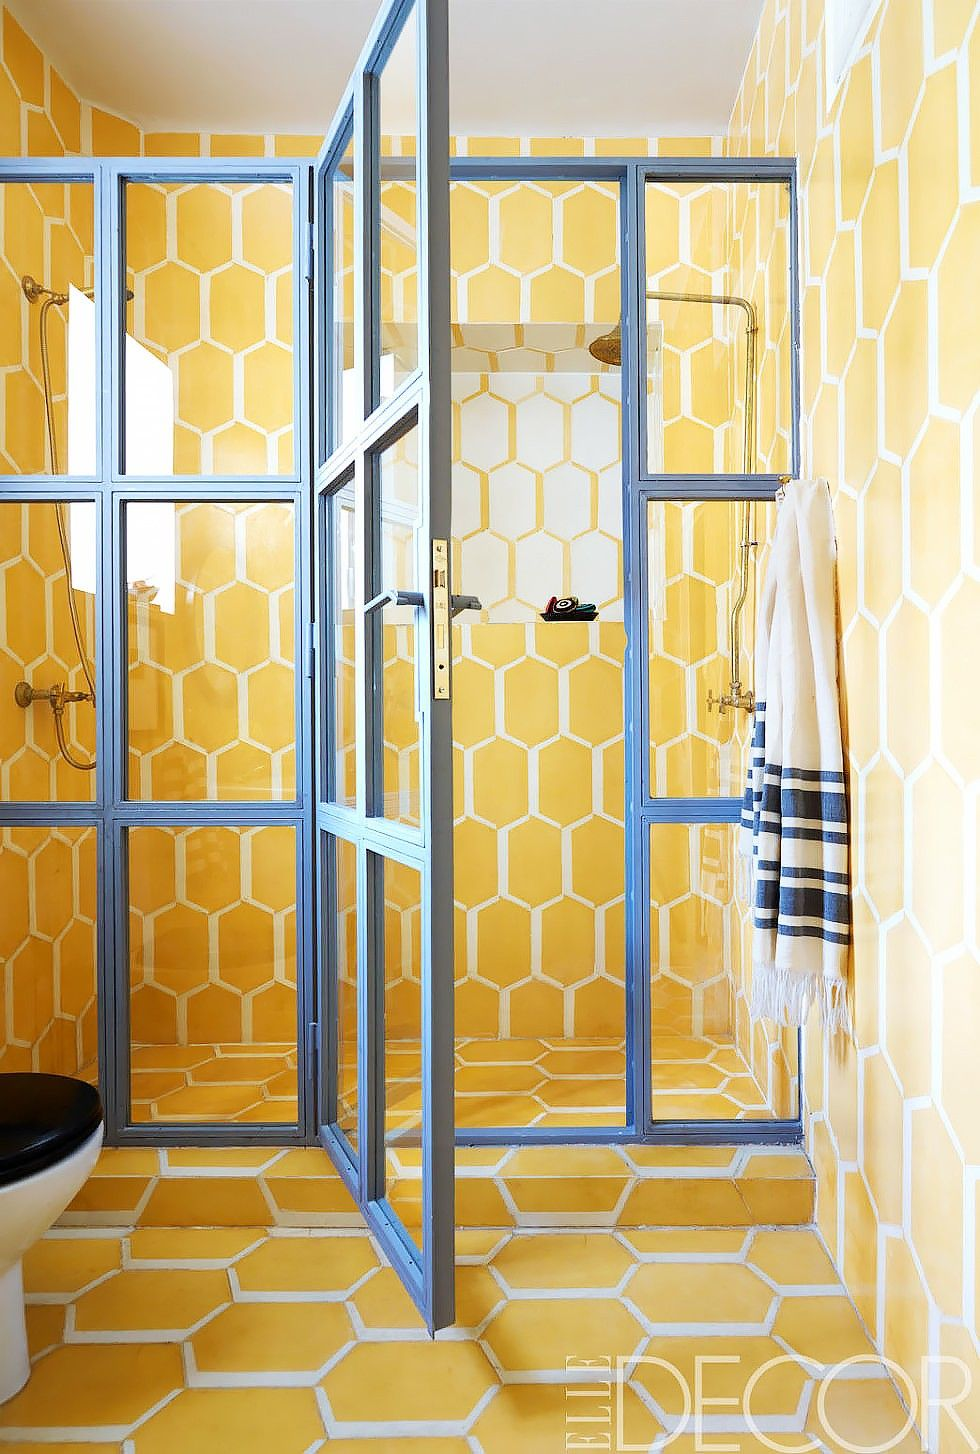 15 Tiny Bathrooms With Major Chic Factor Yellow Bathrooms Yellow Bathroom Decor Tiny Bathrooms